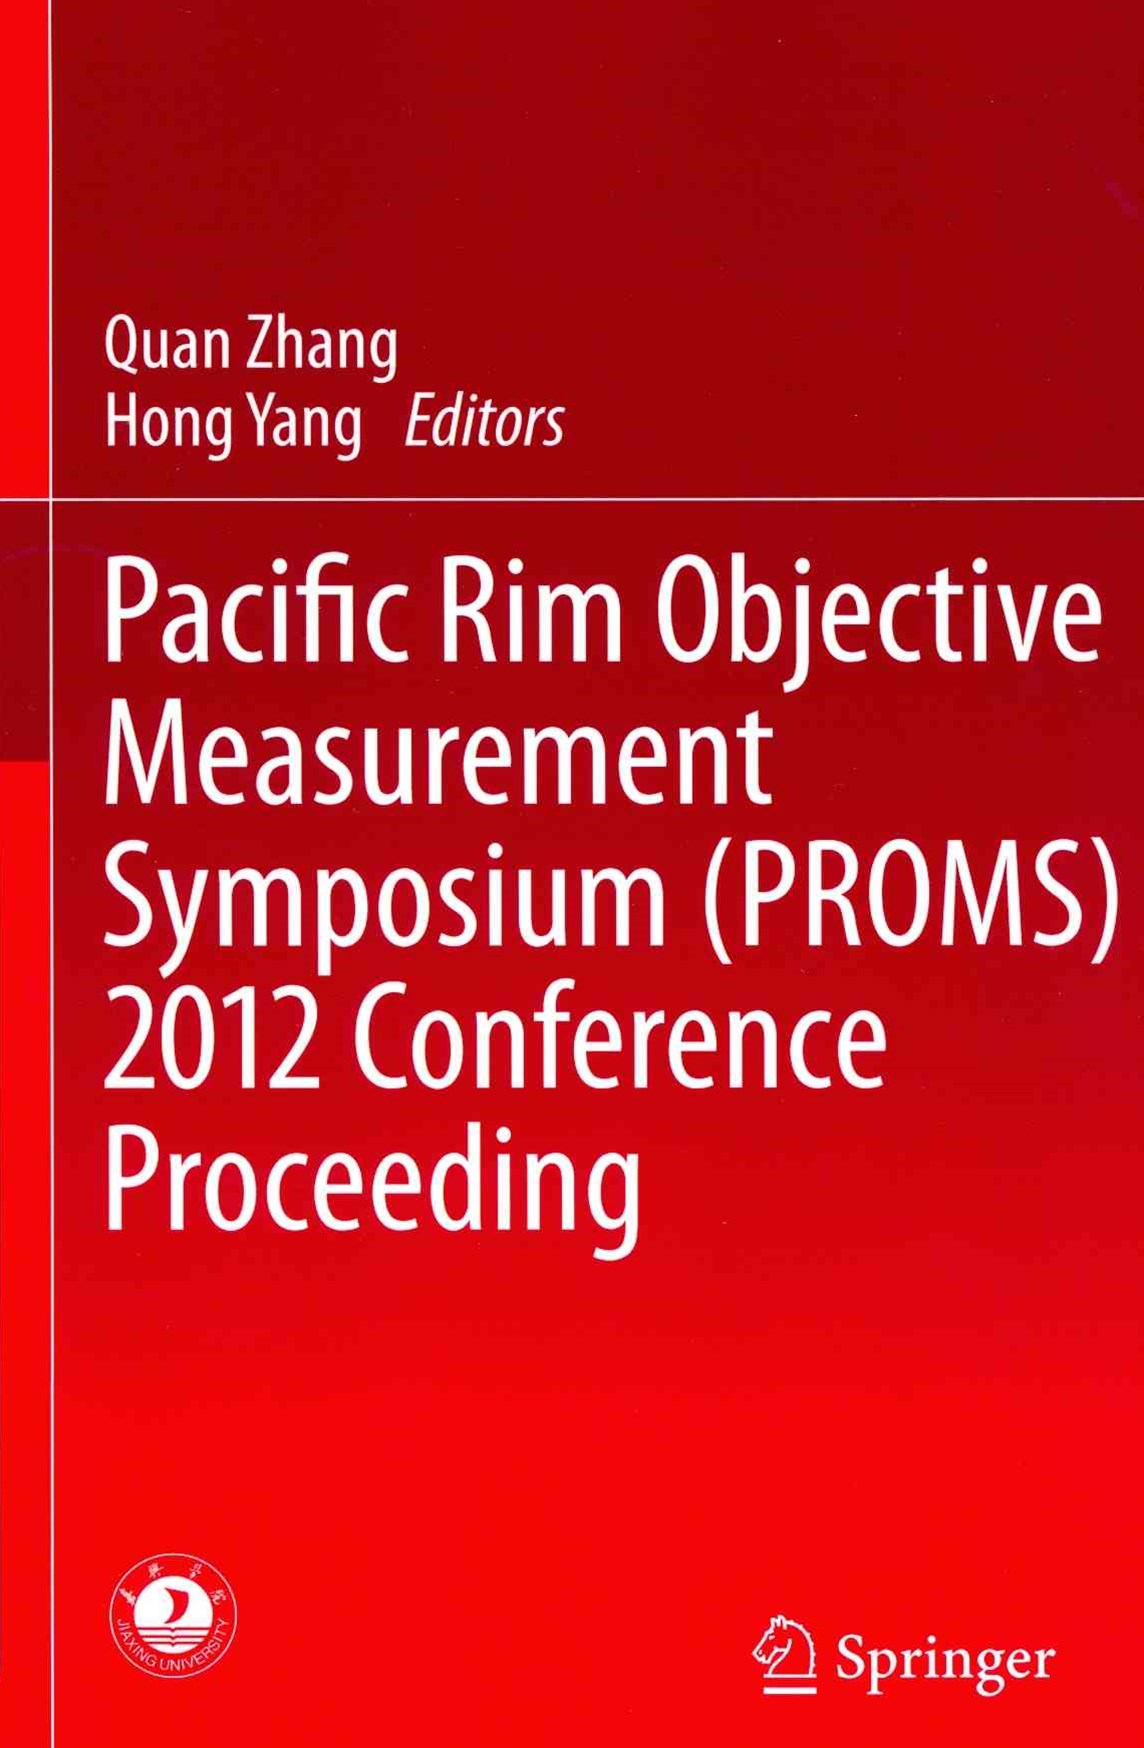 Pacific Rim Objective Measurement Symposium (PROMS) 2012 Conference Proceeding